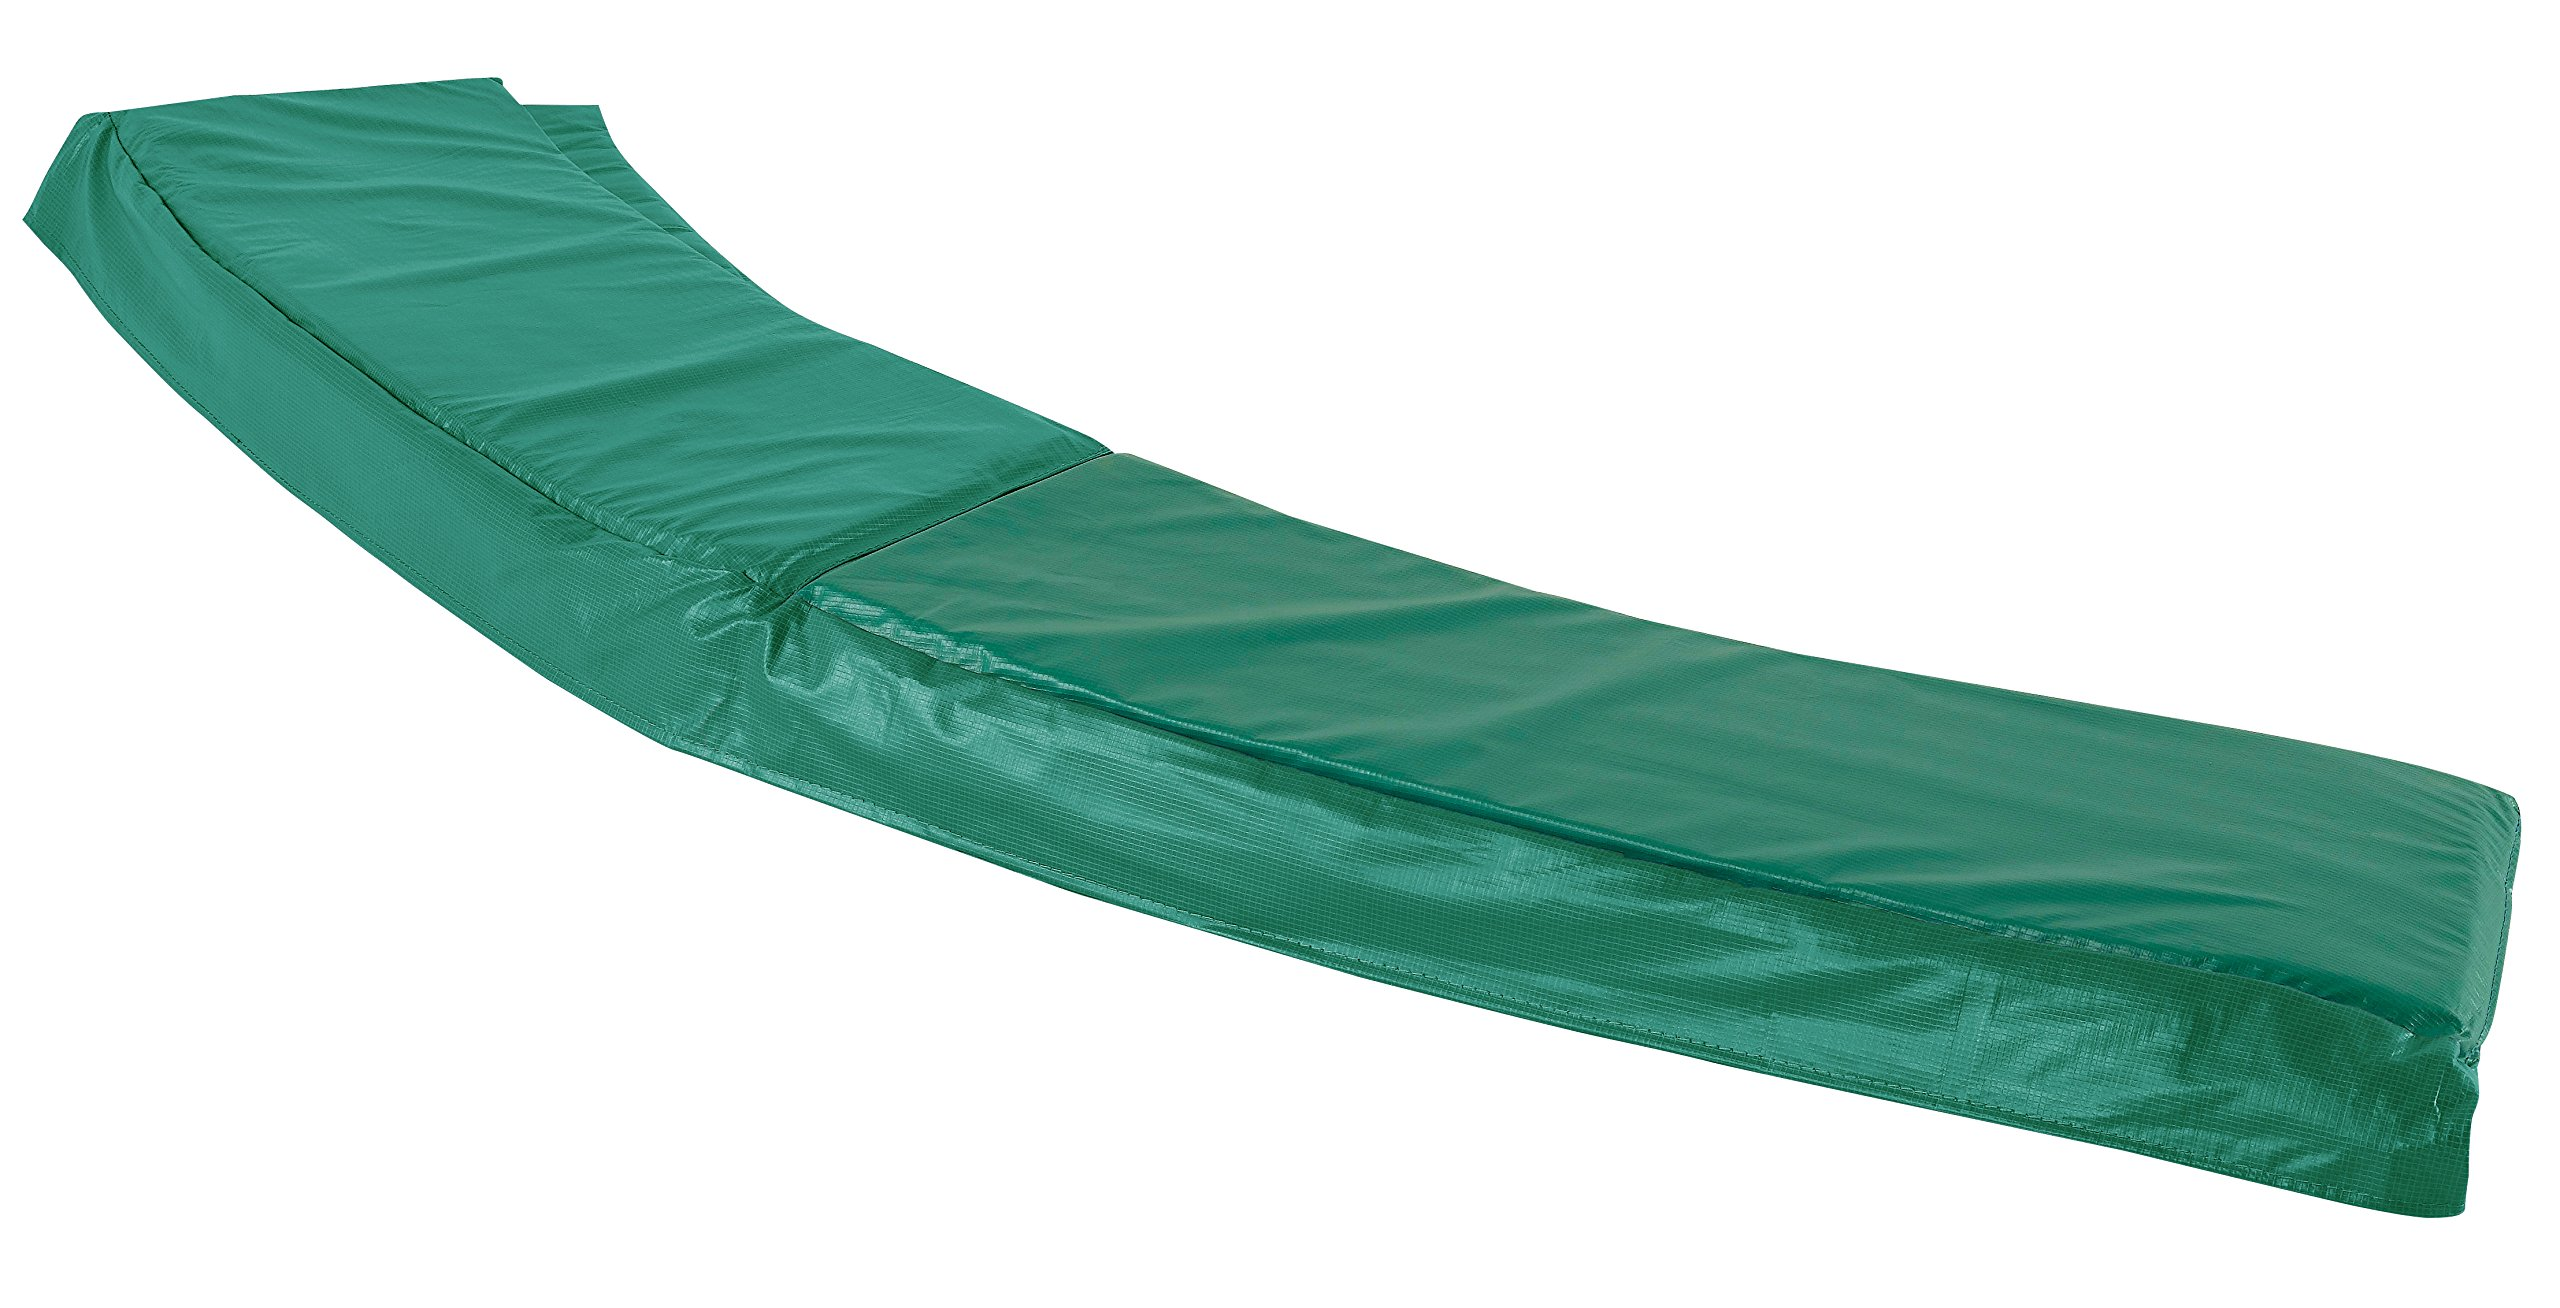 Upper Bounce Super Trampoline Safety Pad (Spring Cover) Fits for 14-Feet Round 10-Inch Wide Trampoline Frames, Green by Upper Bounce (Image #6)